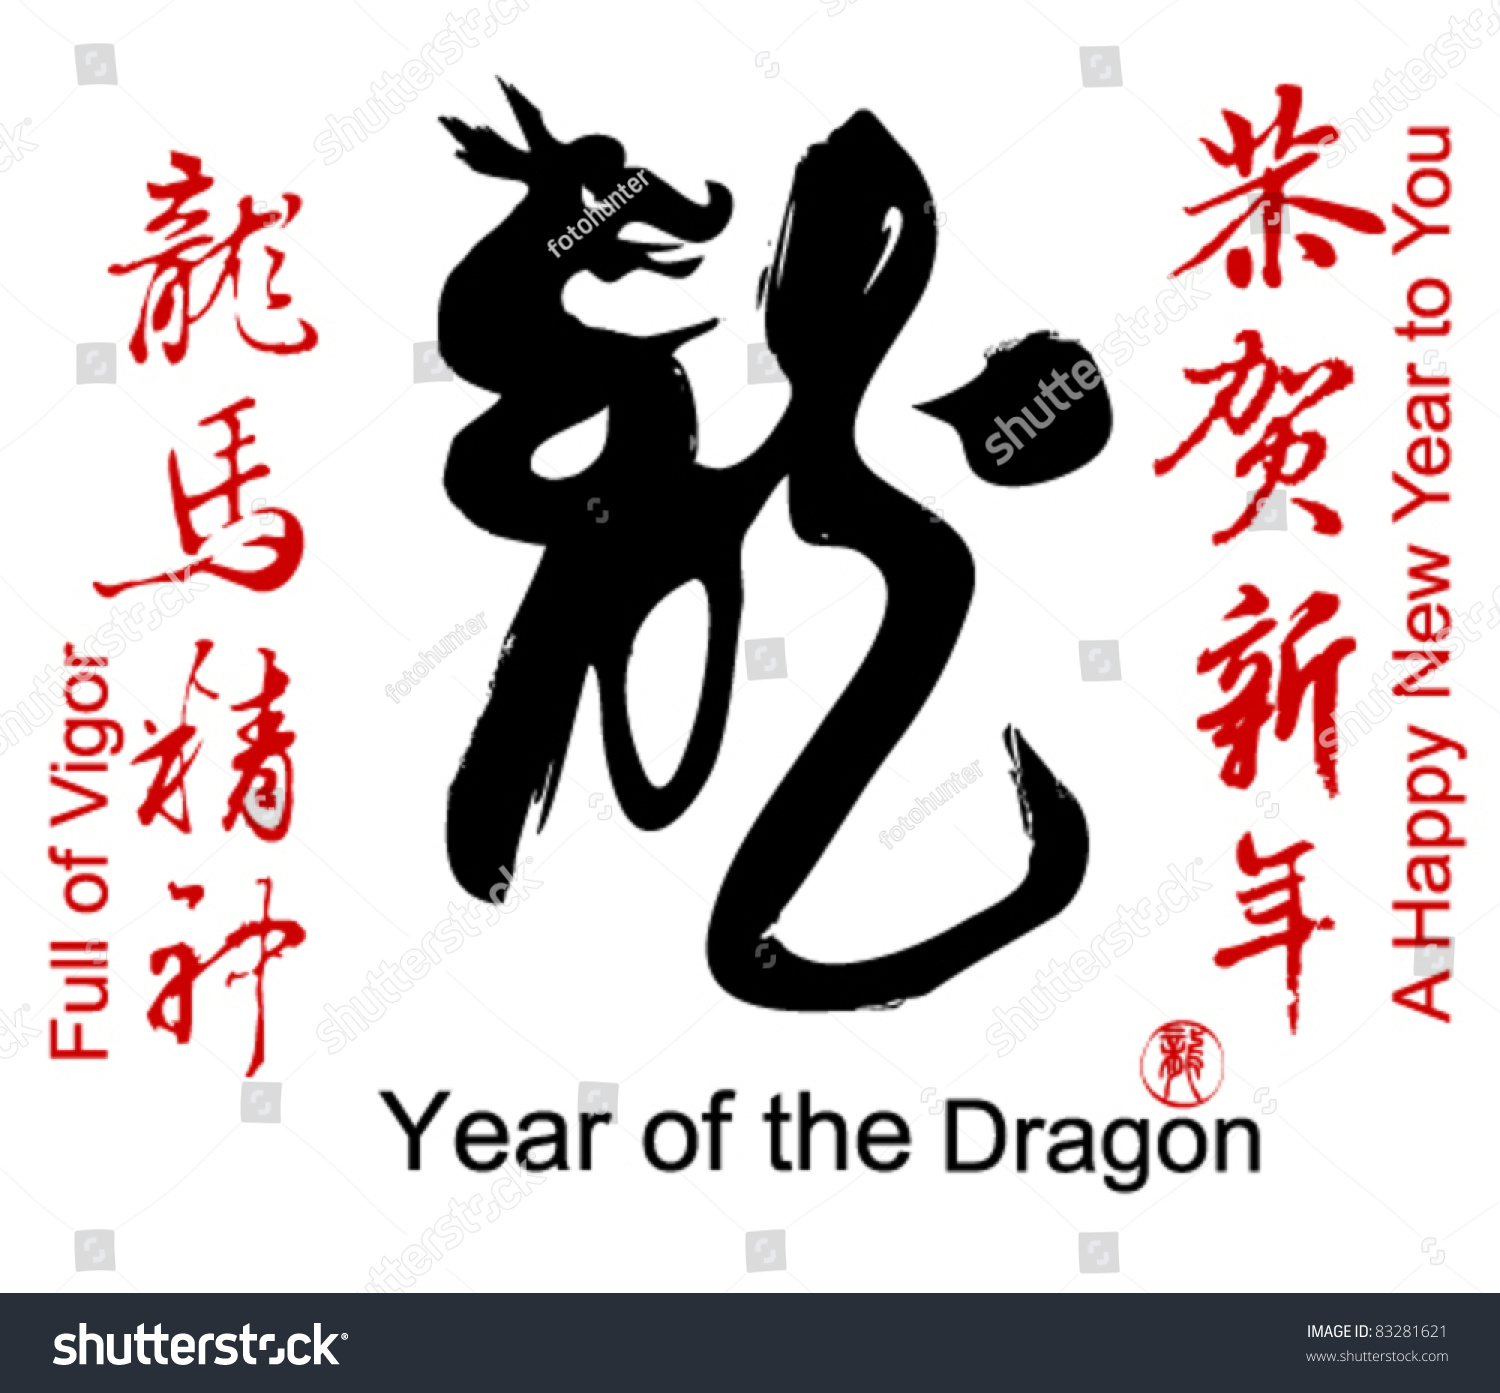 dragon in chinese writing See and discover other items: chinese art calligraphy, chinese character, chinese characters, chinese kid, creative writing for kids there's a problem loading this menu right now learn more about amazon prime.